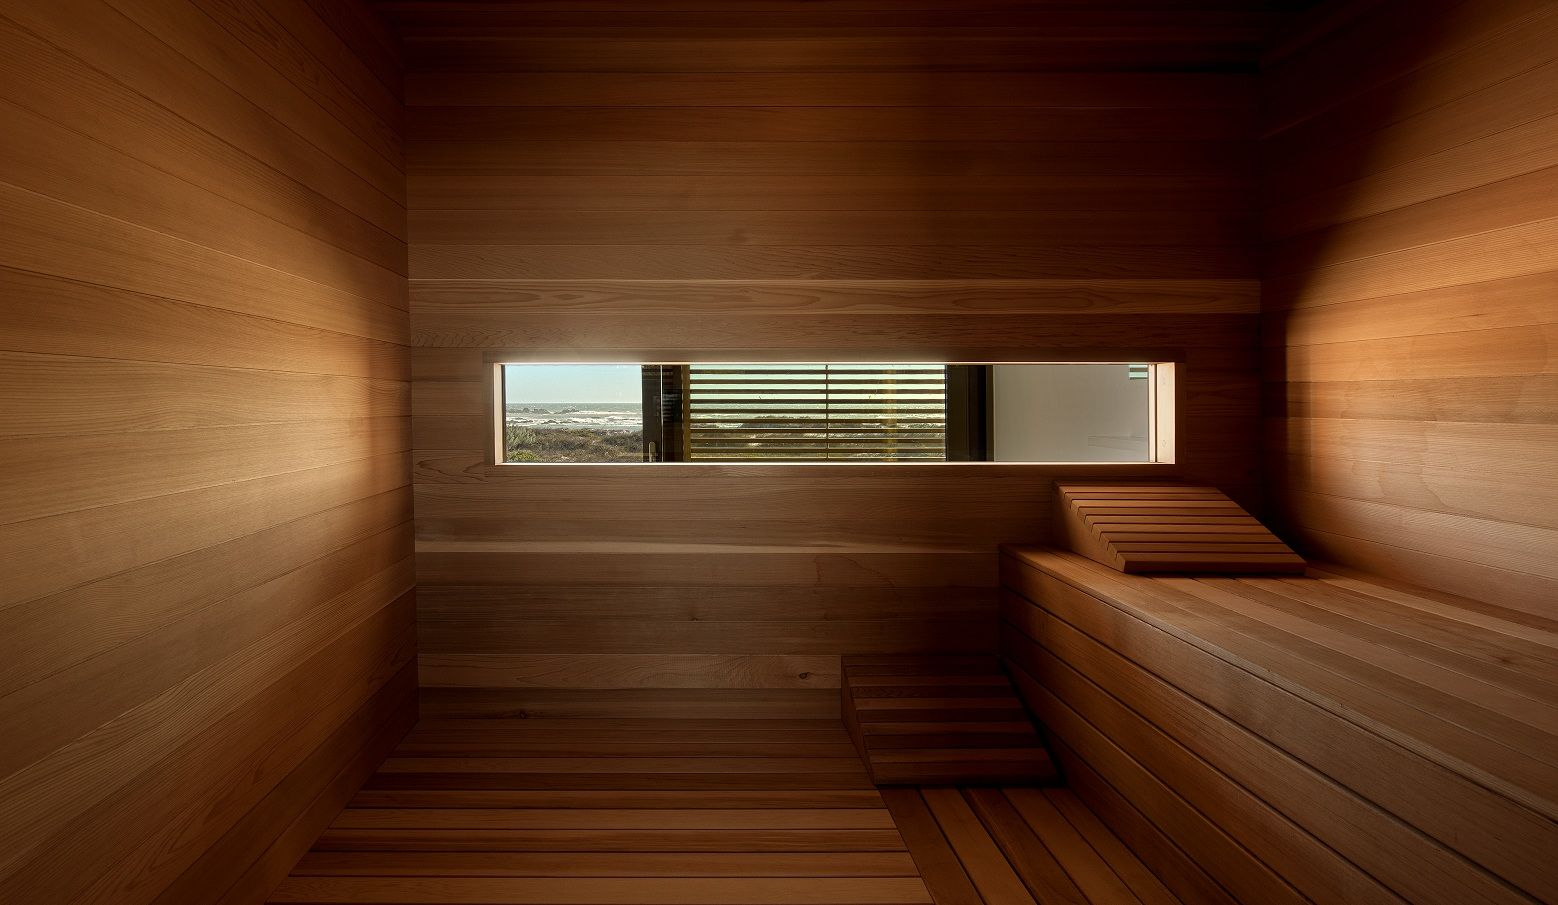 western red cedar sauna big bay cape town cladding. Black Bedroom Furniture Sets. Home Design Ideas